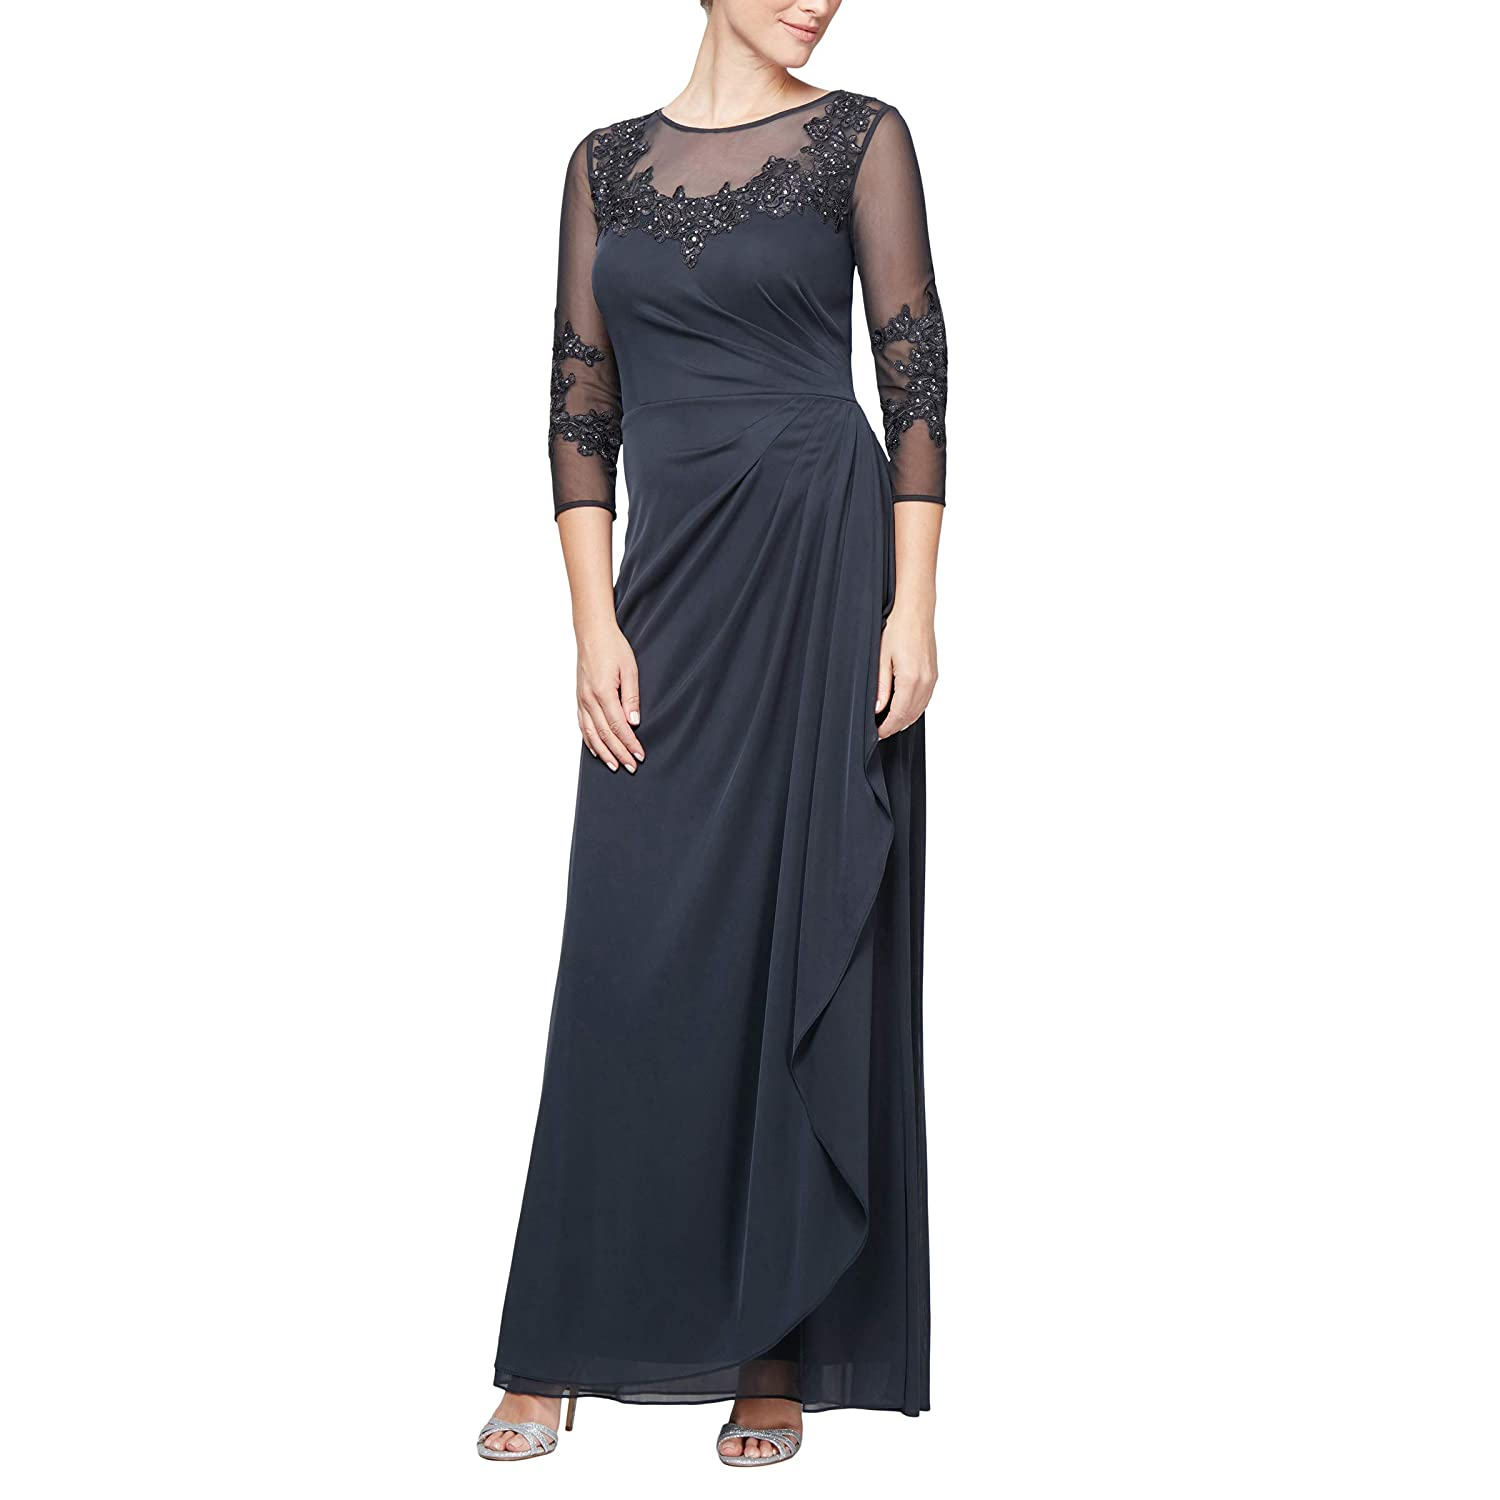 6e4b8cfa84 Top1: Alex Evenings Women's Long a-Line Dress with Sleeves (Petite and  Regular Sizes)